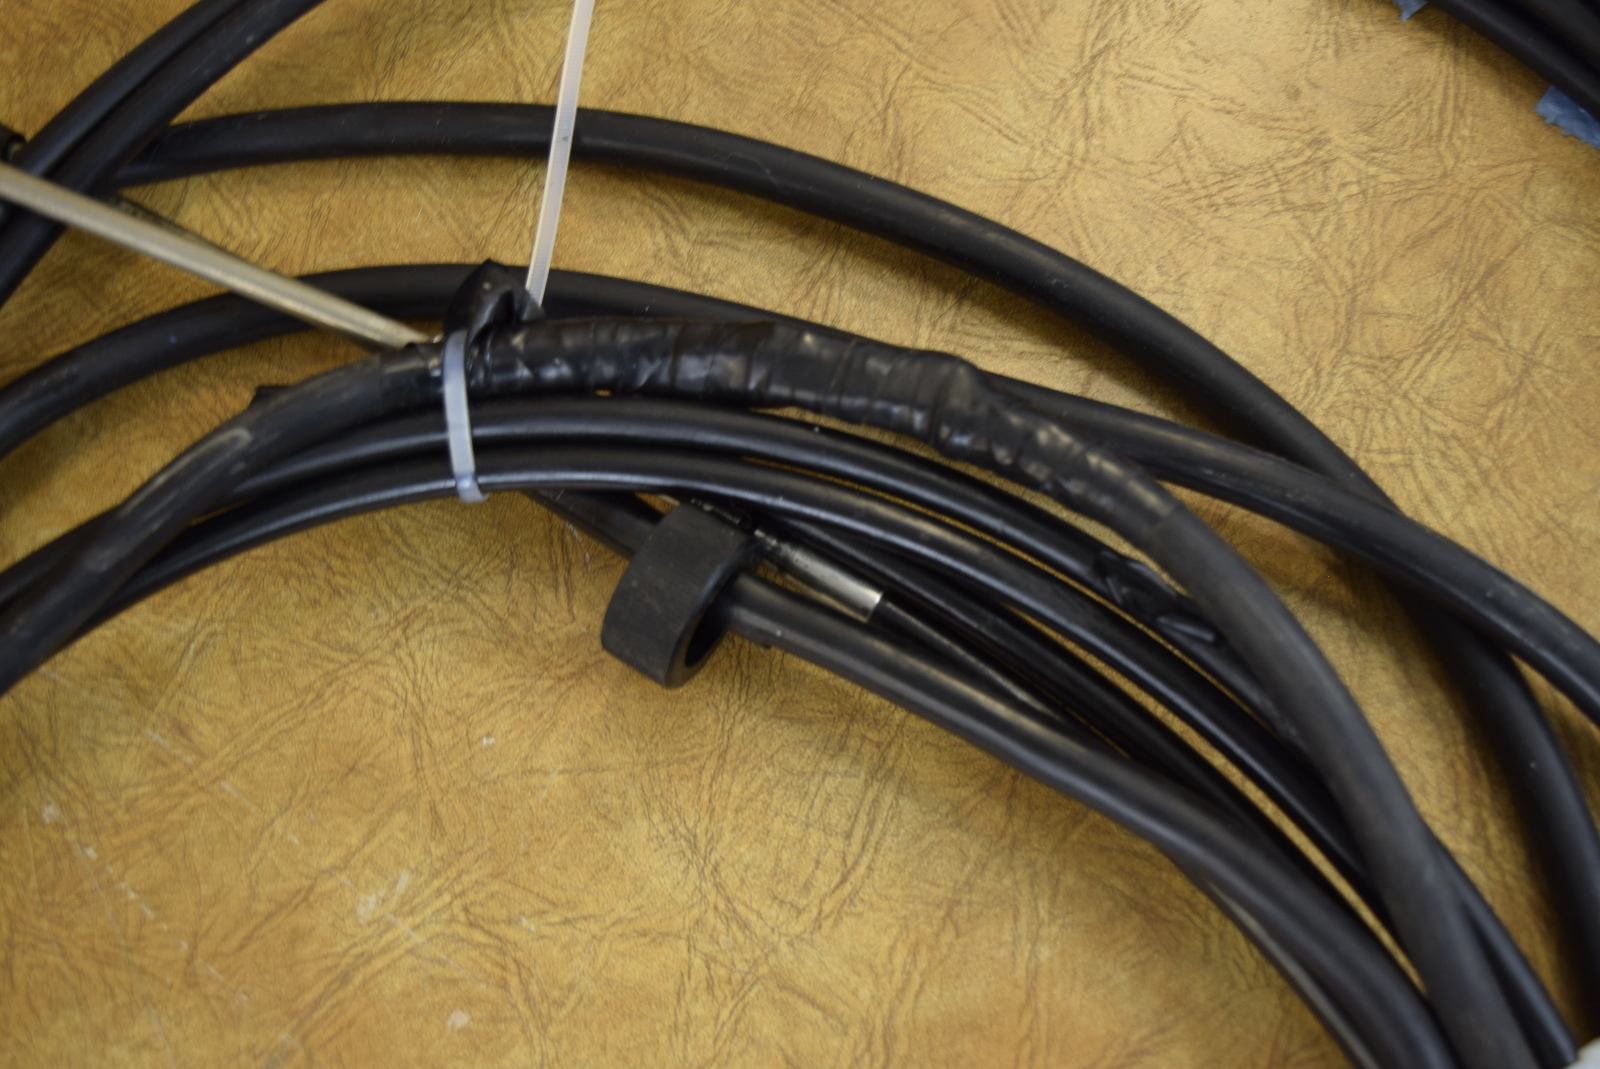 Suzuki Outboard Cables : Suzuki marine side mount control box with foot cables